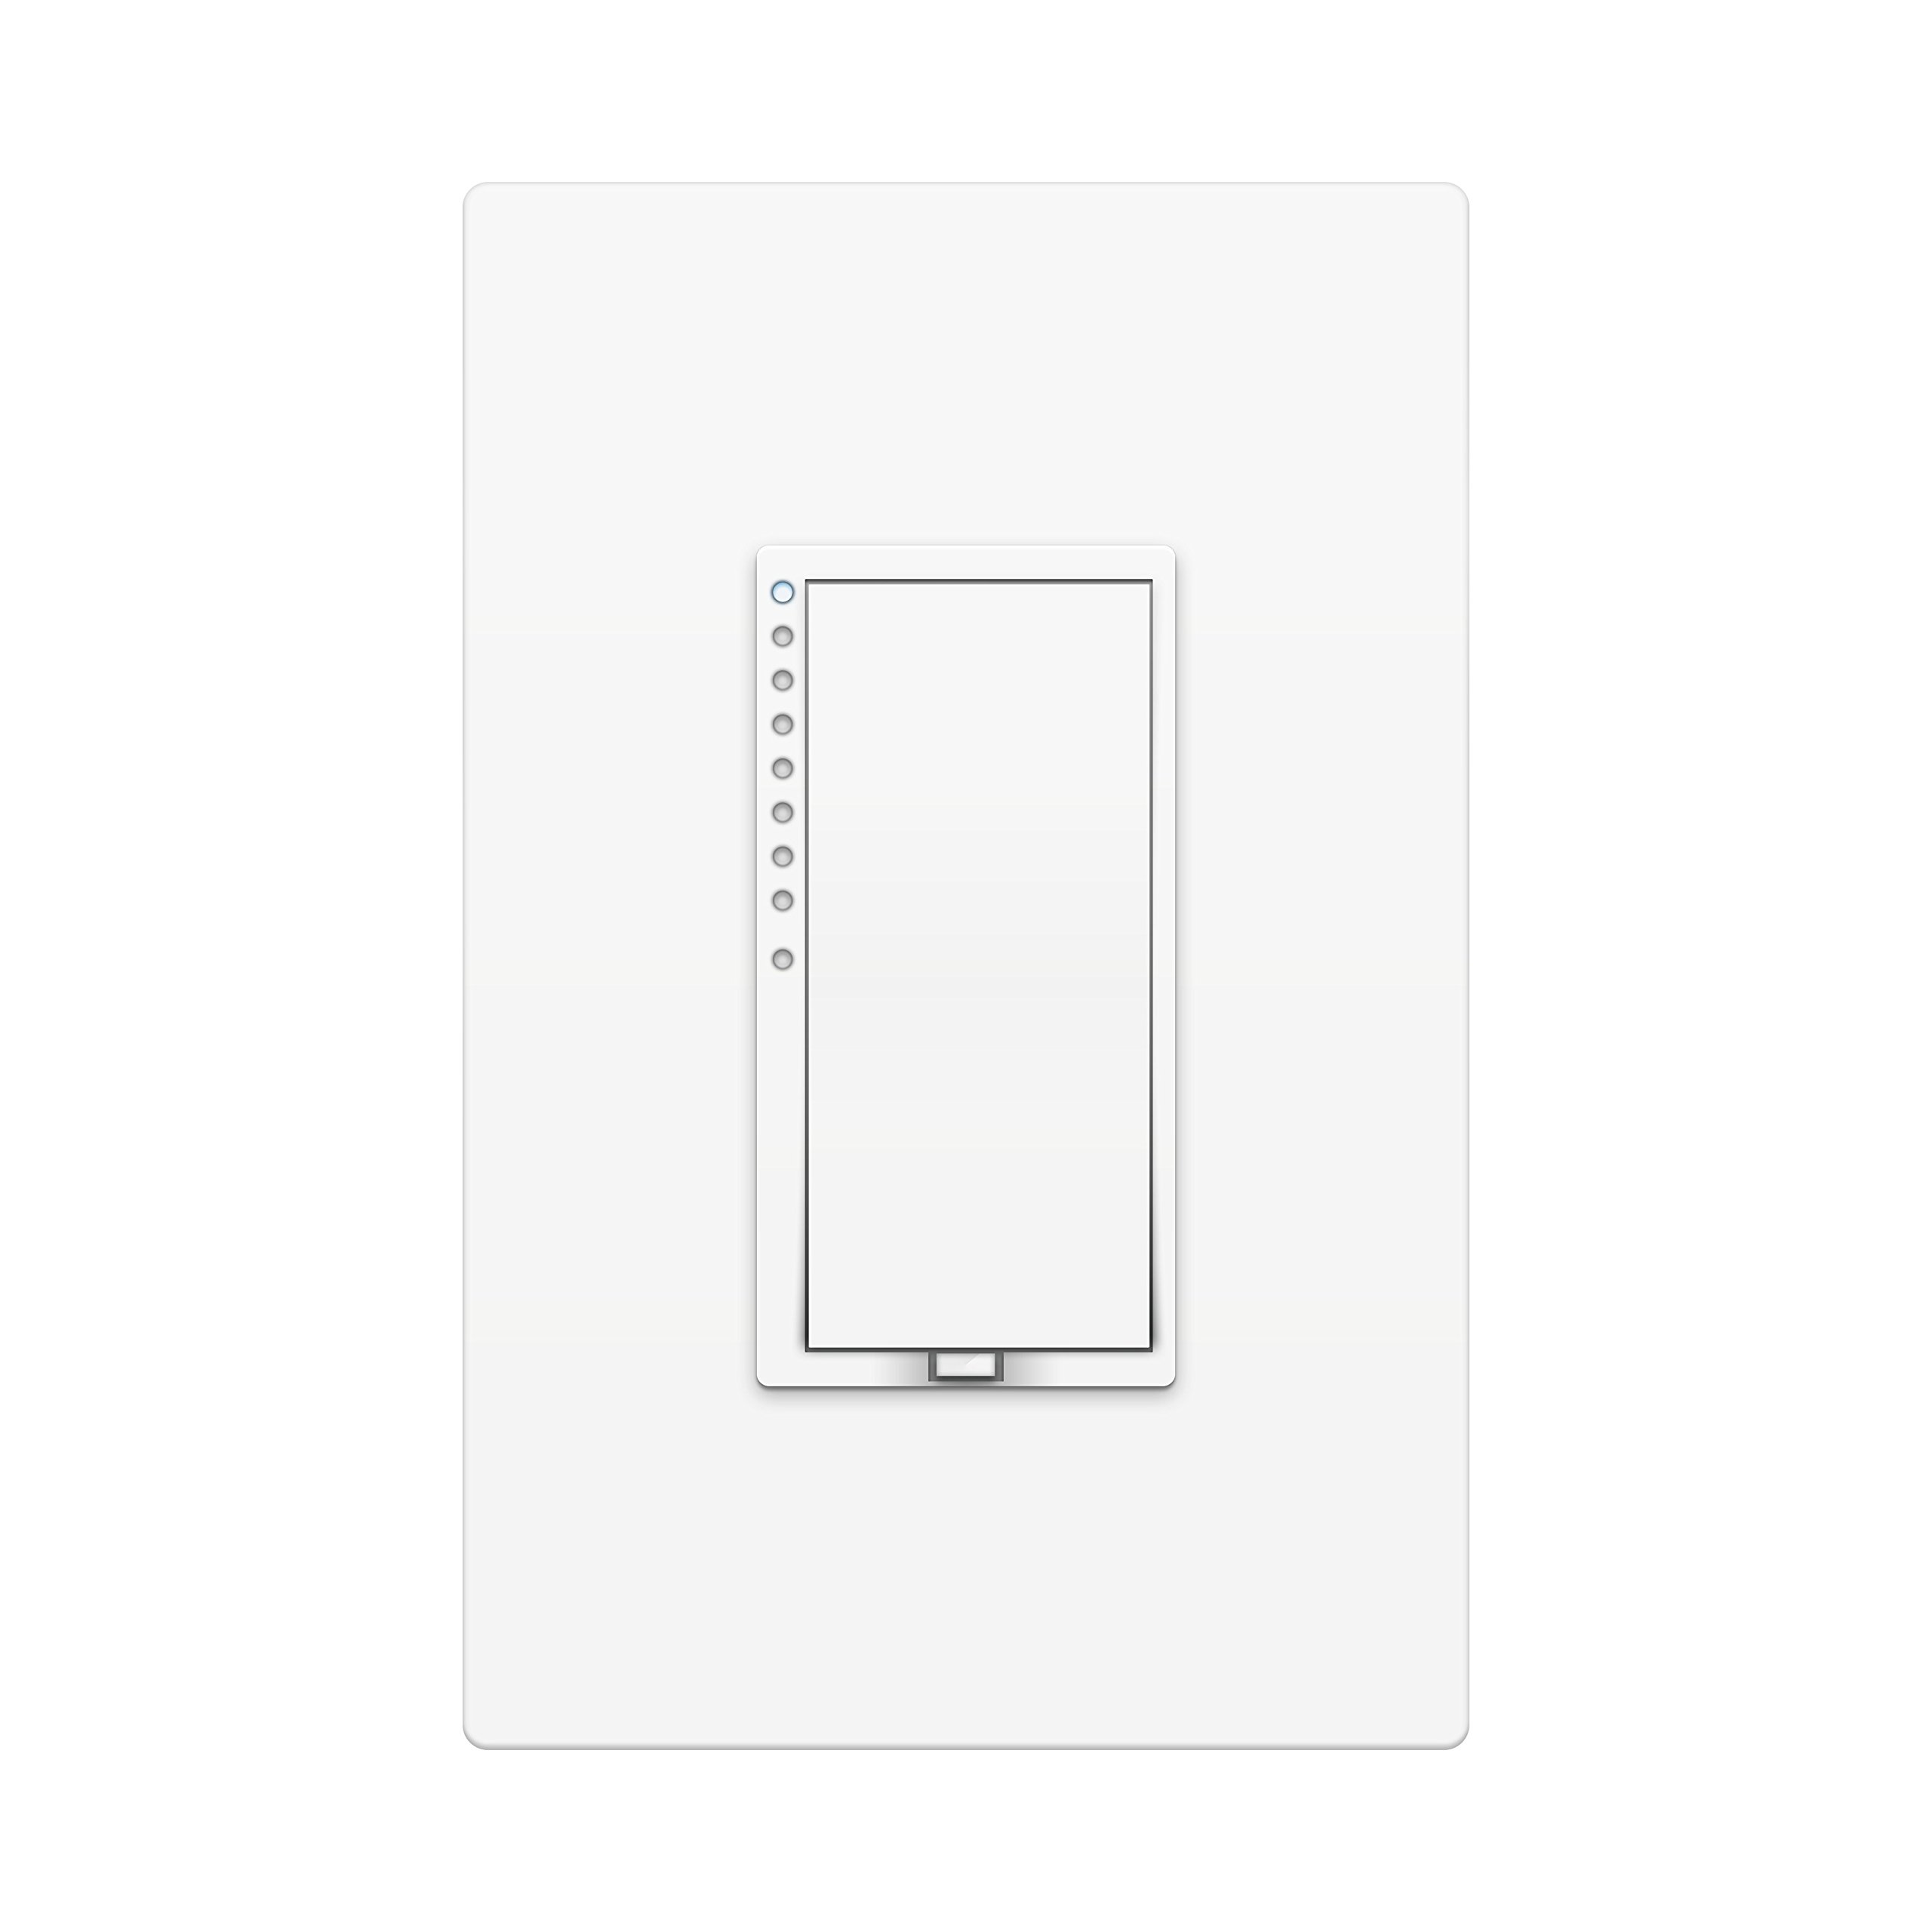 Insteon Smart High Wattage Dimmer Wall Switch, Works with Alexa via Insteon Hub, Uses Superior Dual-Mesh Wireless Technology for Unbeatable Reliability - Better than Wi-Fi, Zigbee & Z-Wave